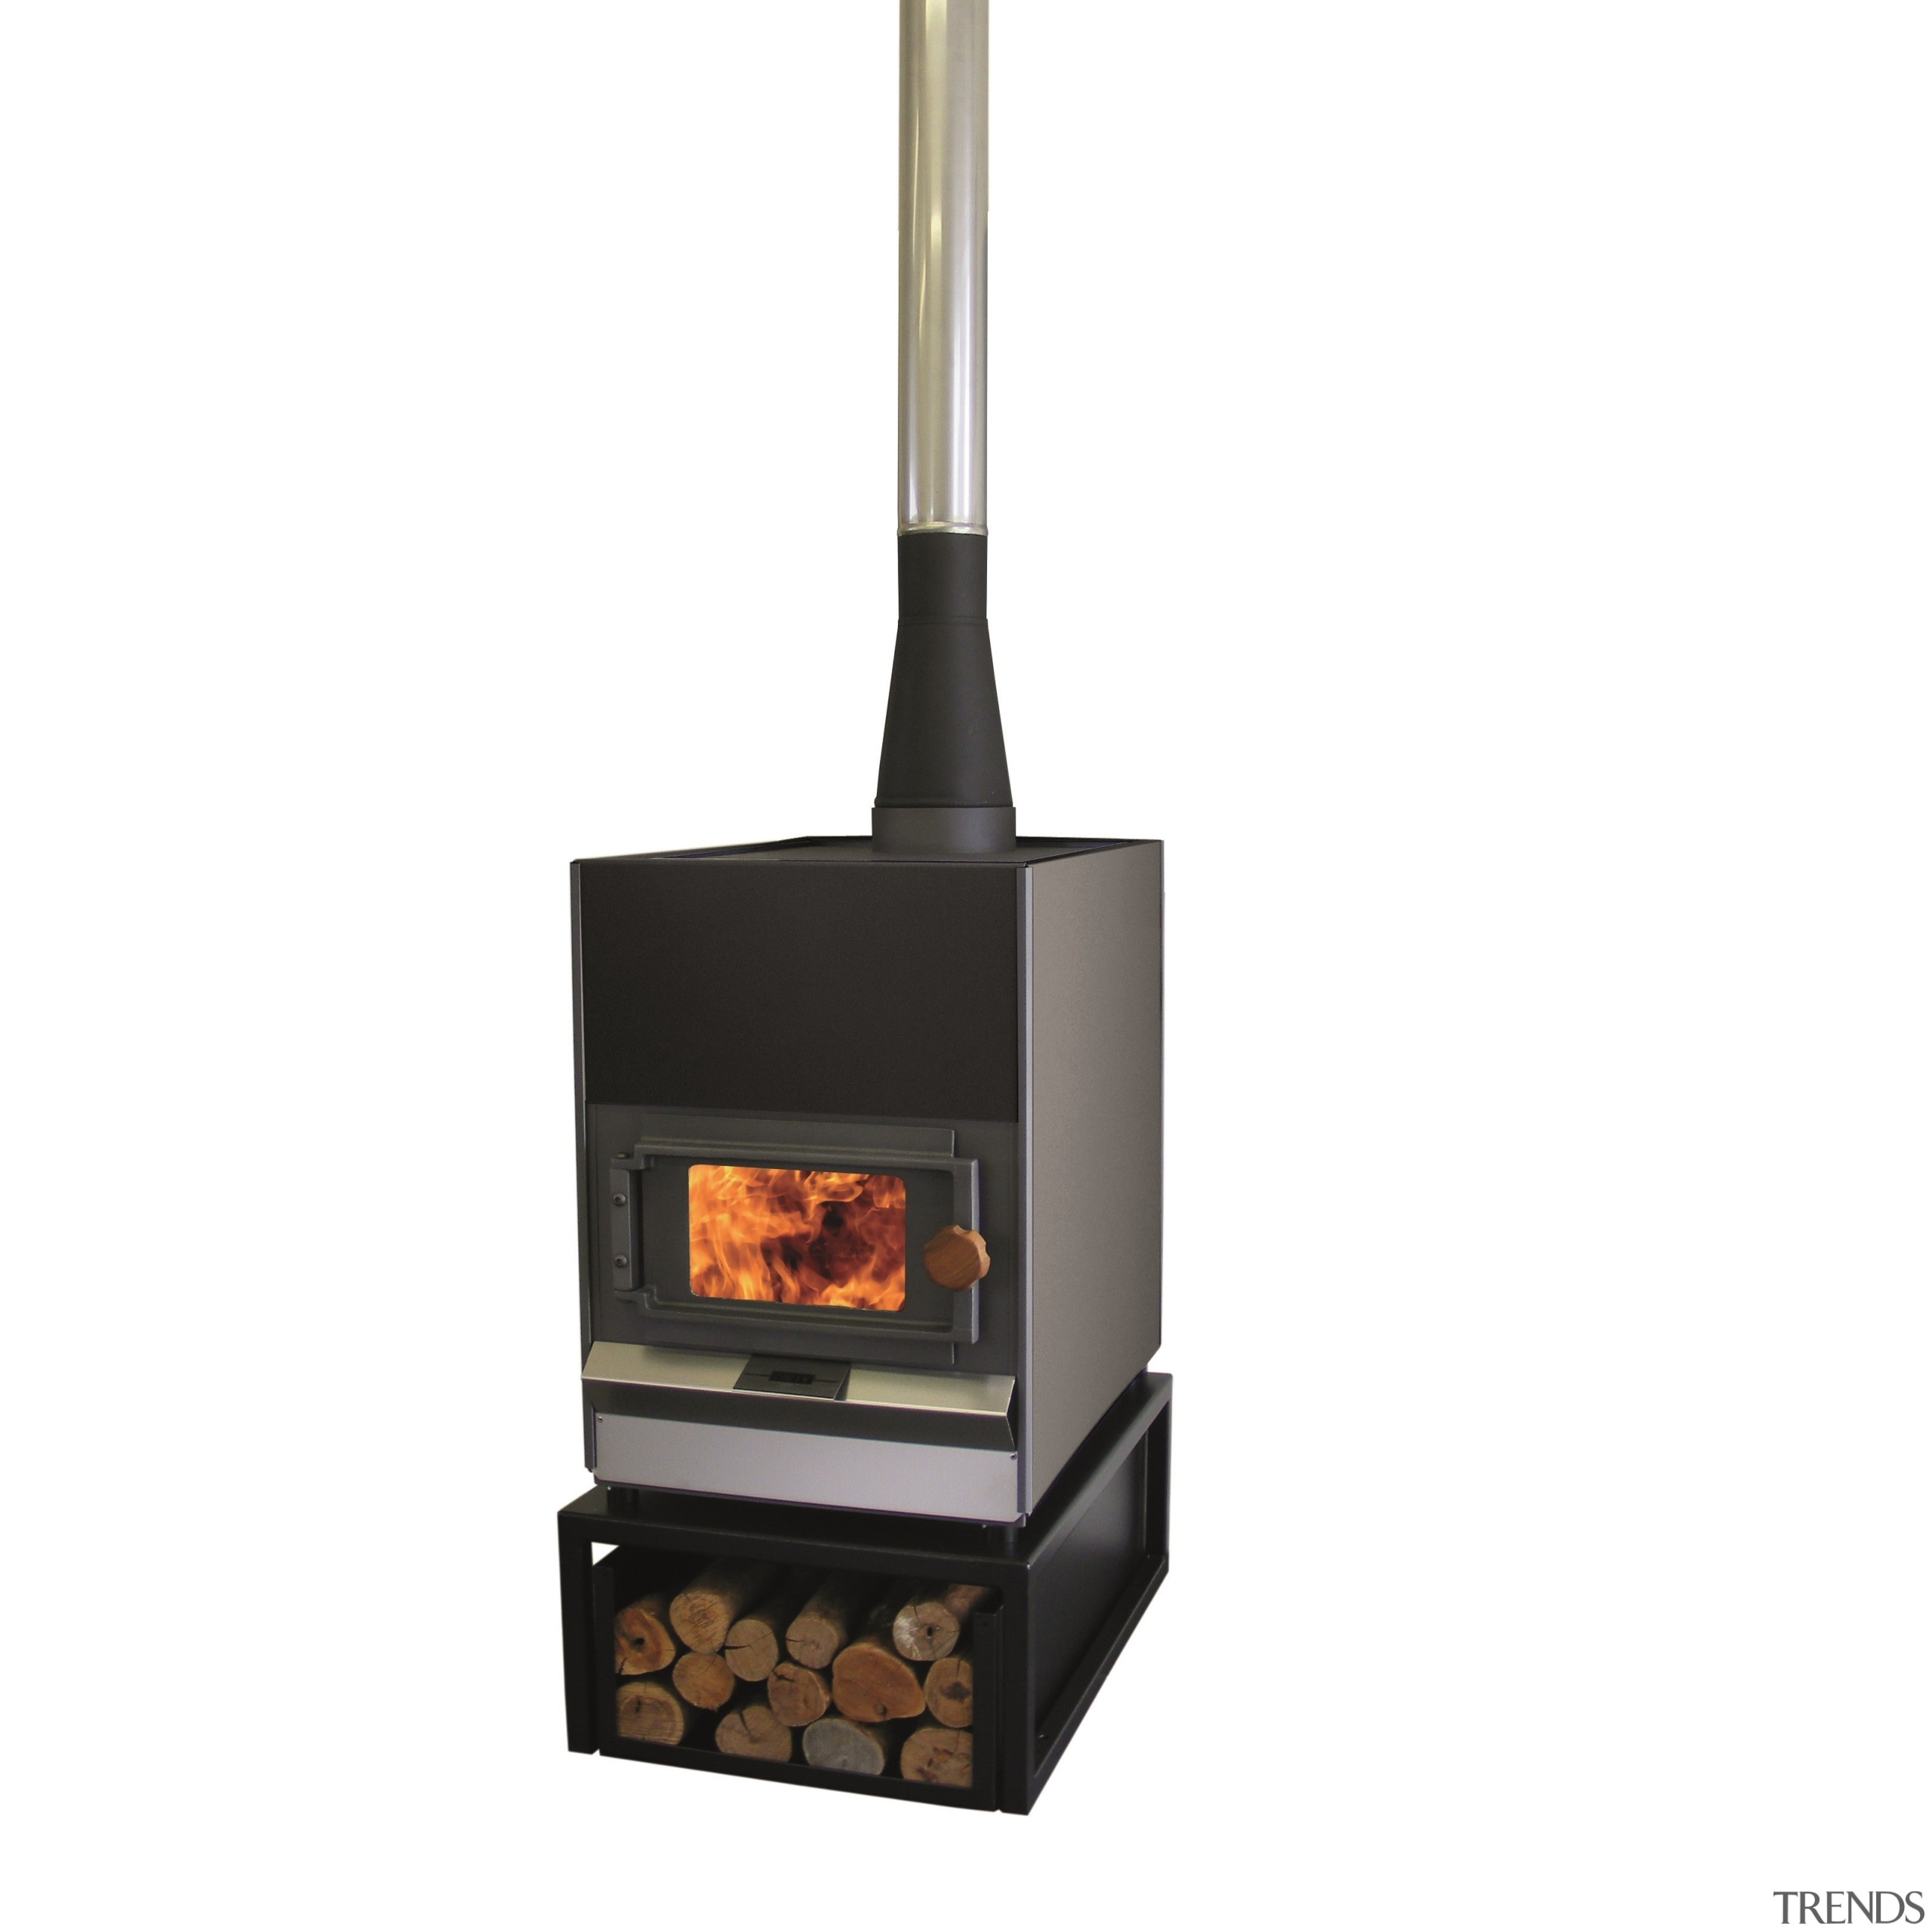 Pyroclassic IV on a mini woodbin with Matte hearth, home appliance, product, wood burning stove, white